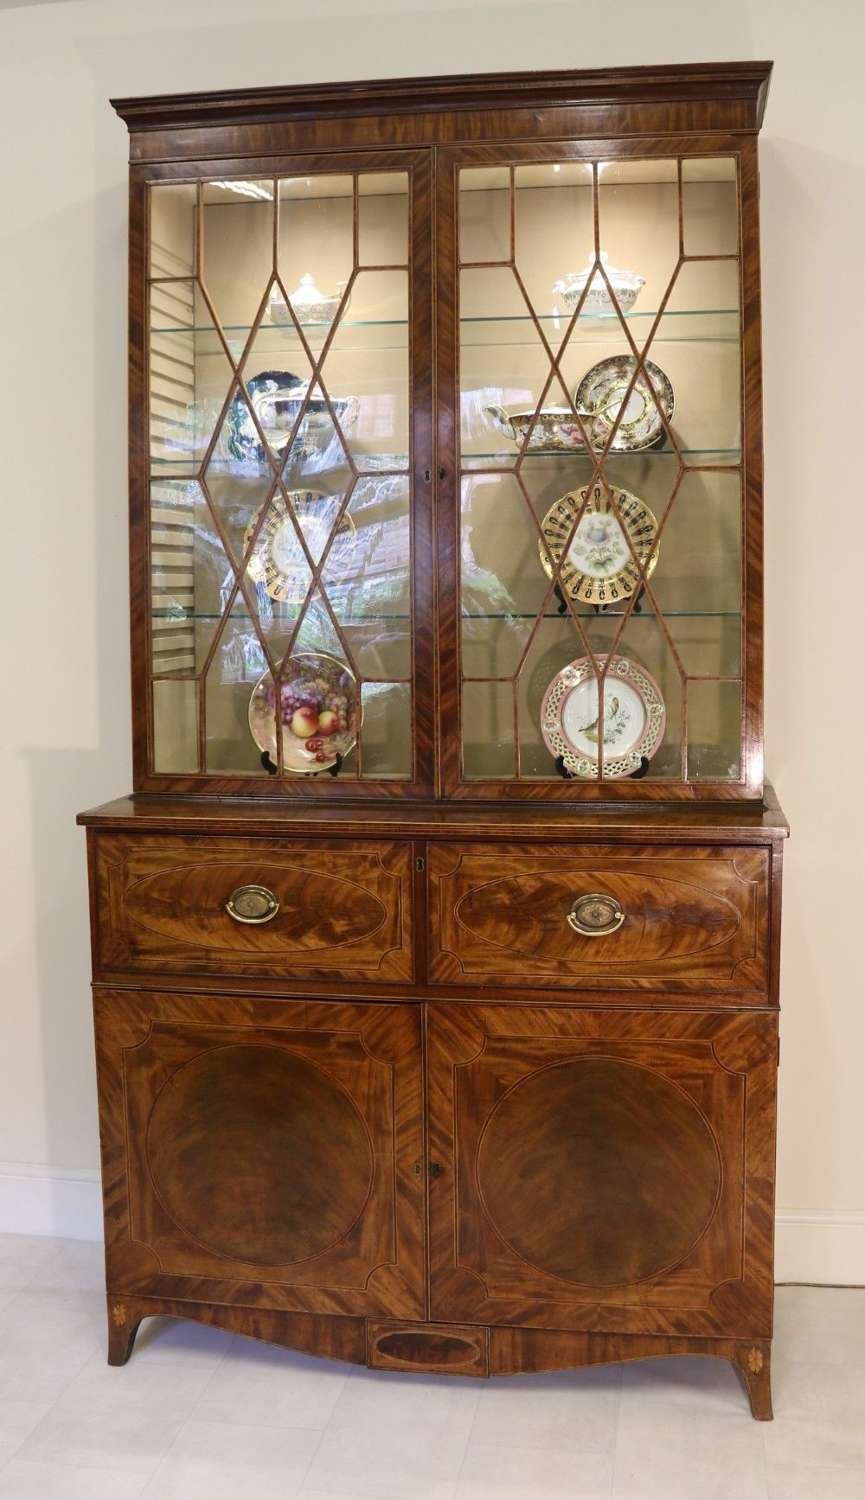 A Superb George III Period Inlaid Flame Mahogany Secretaire Bookcase/display Cabinet